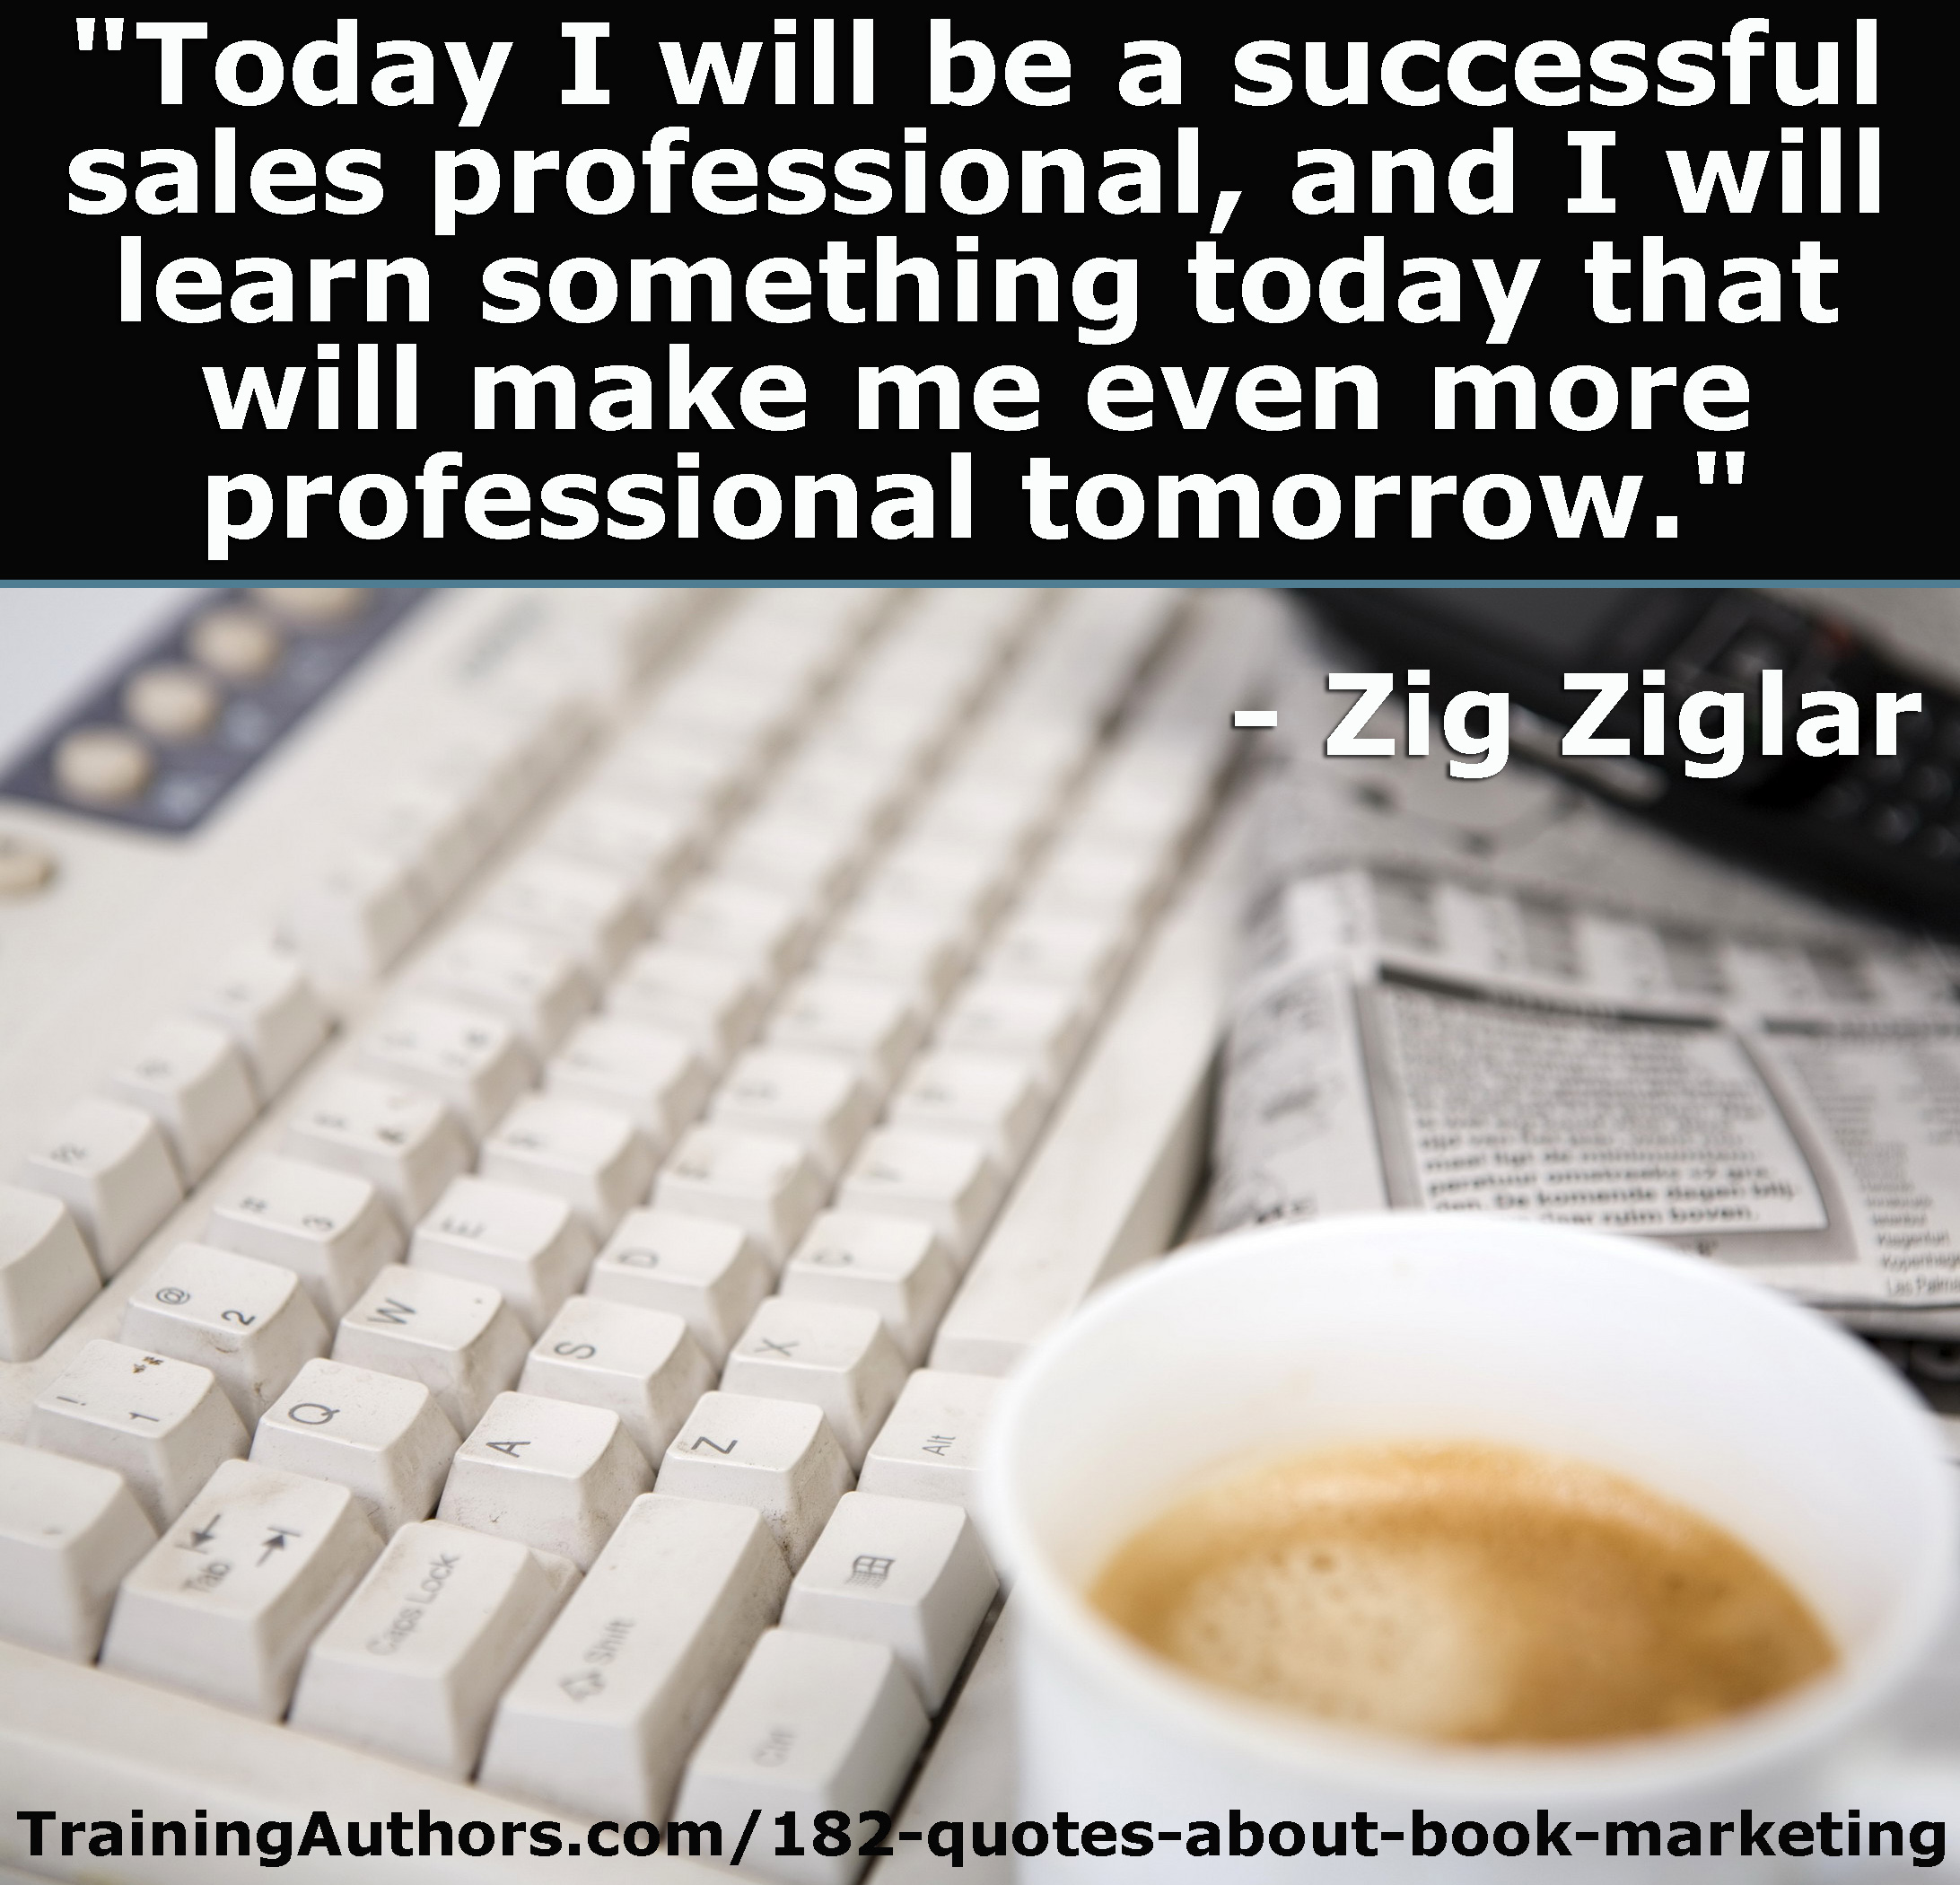 Quotes Zig Ziglar 182 Quotes About Book Marketing  Training Authors For Success